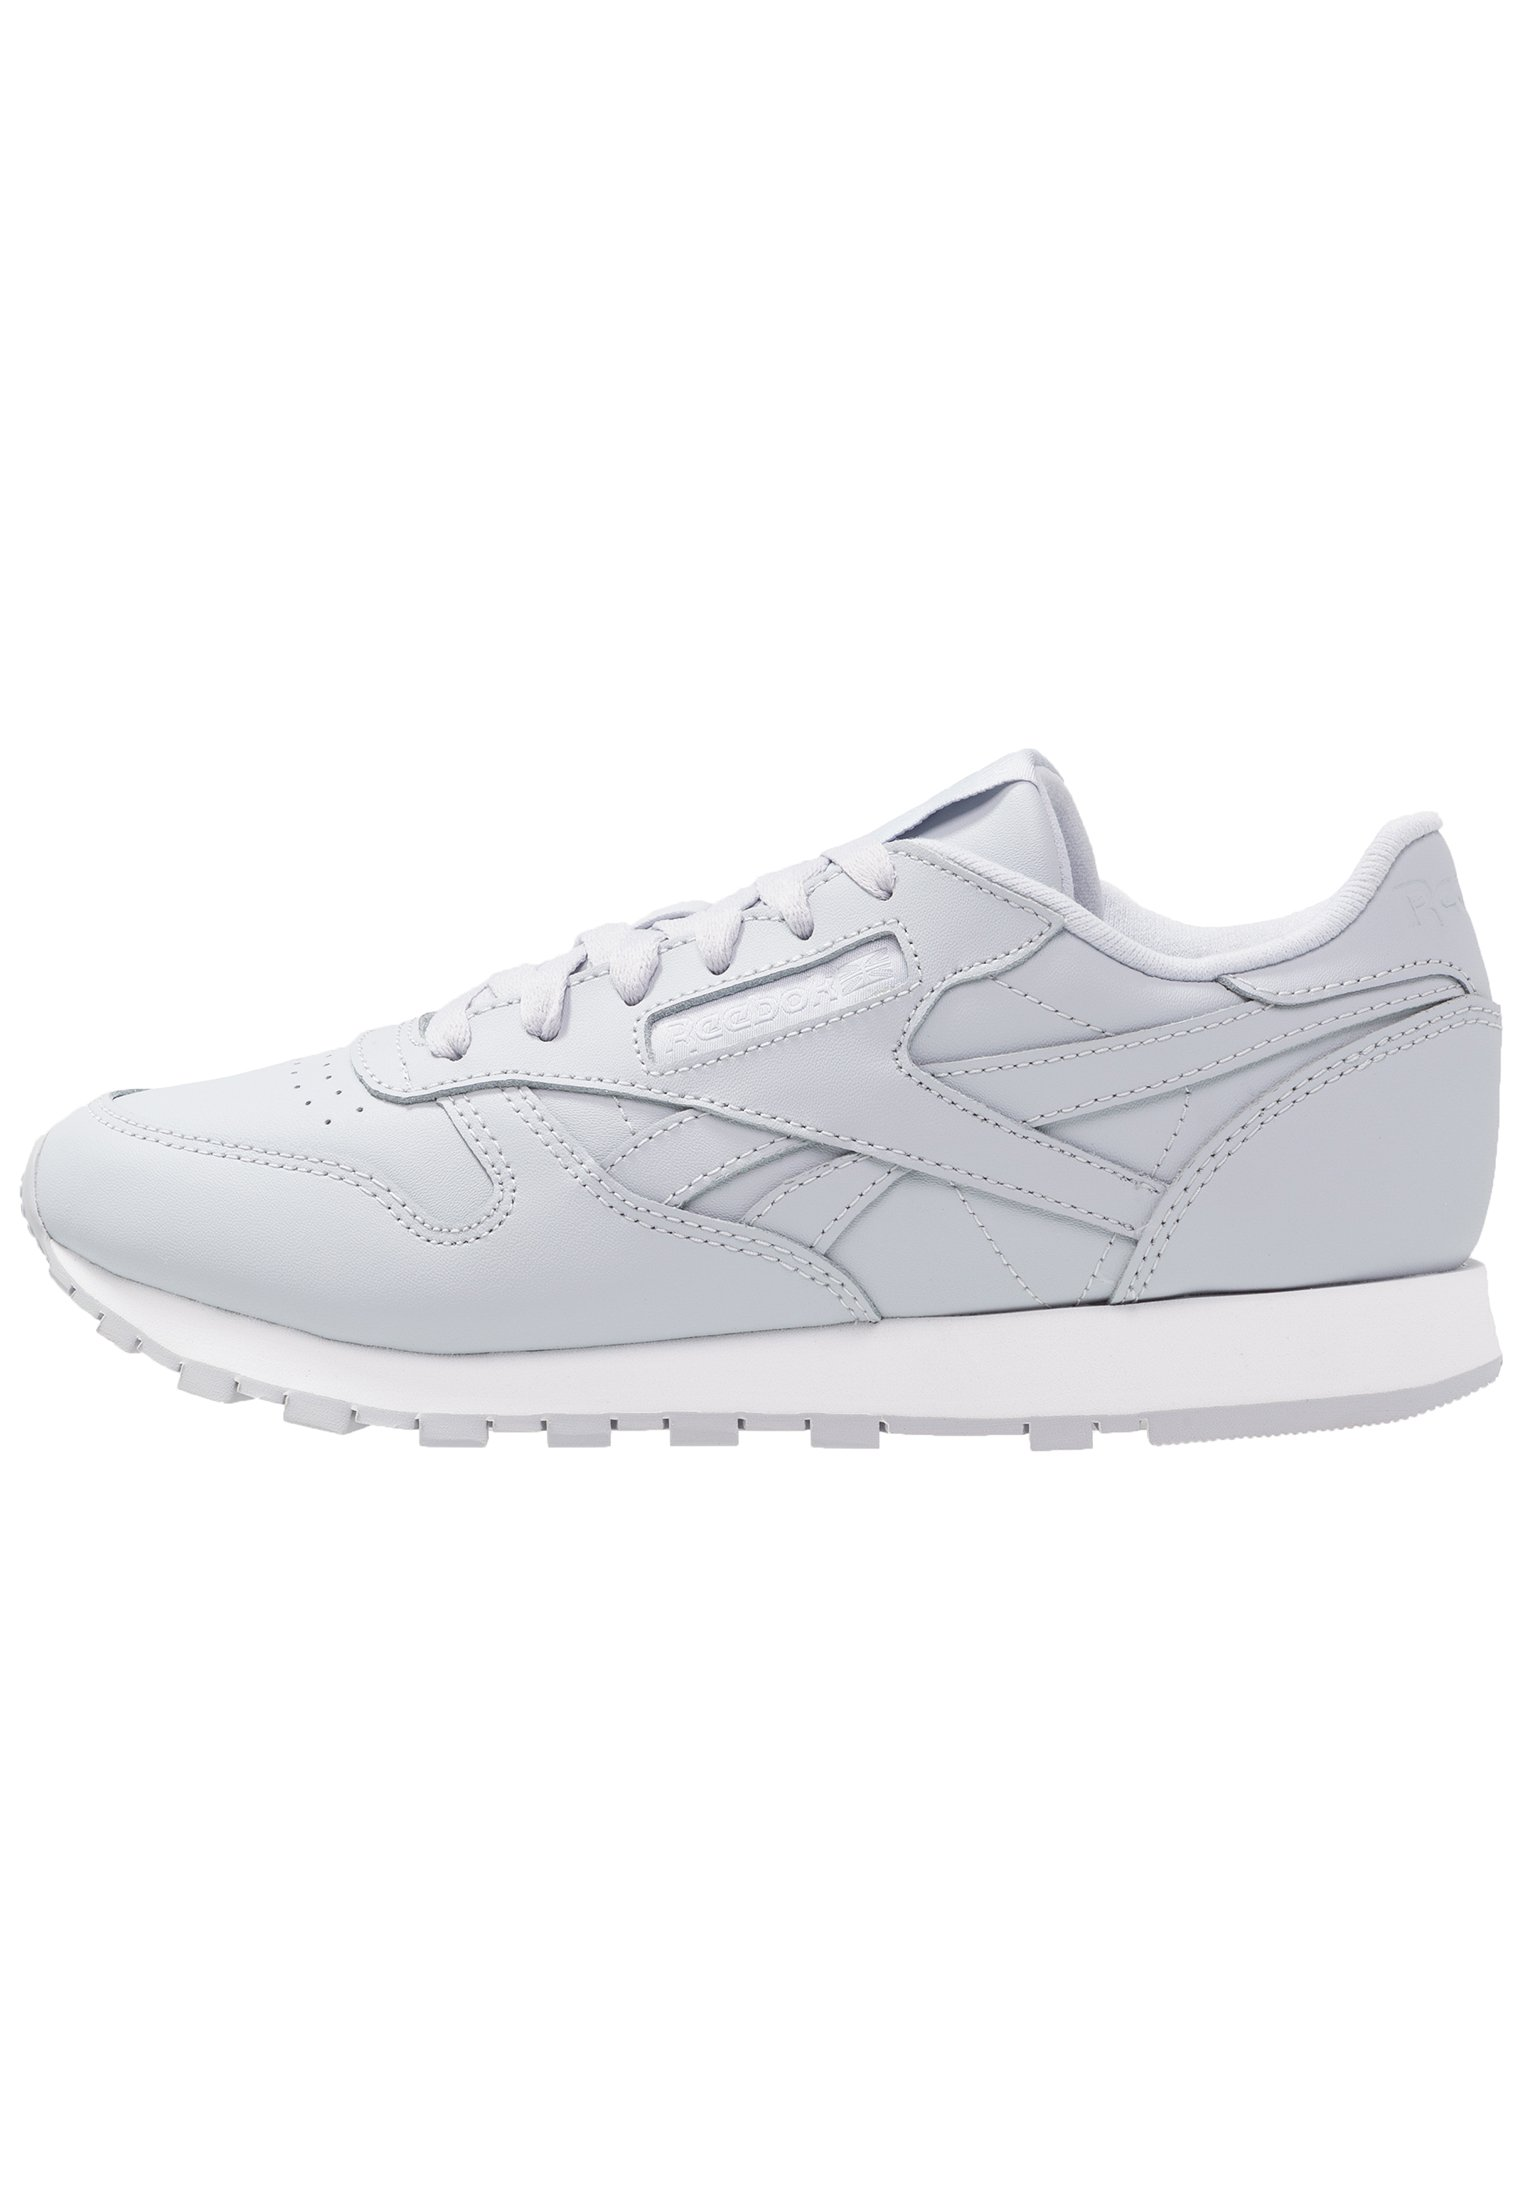 Reebok Classic Sneakers - cold grey/white